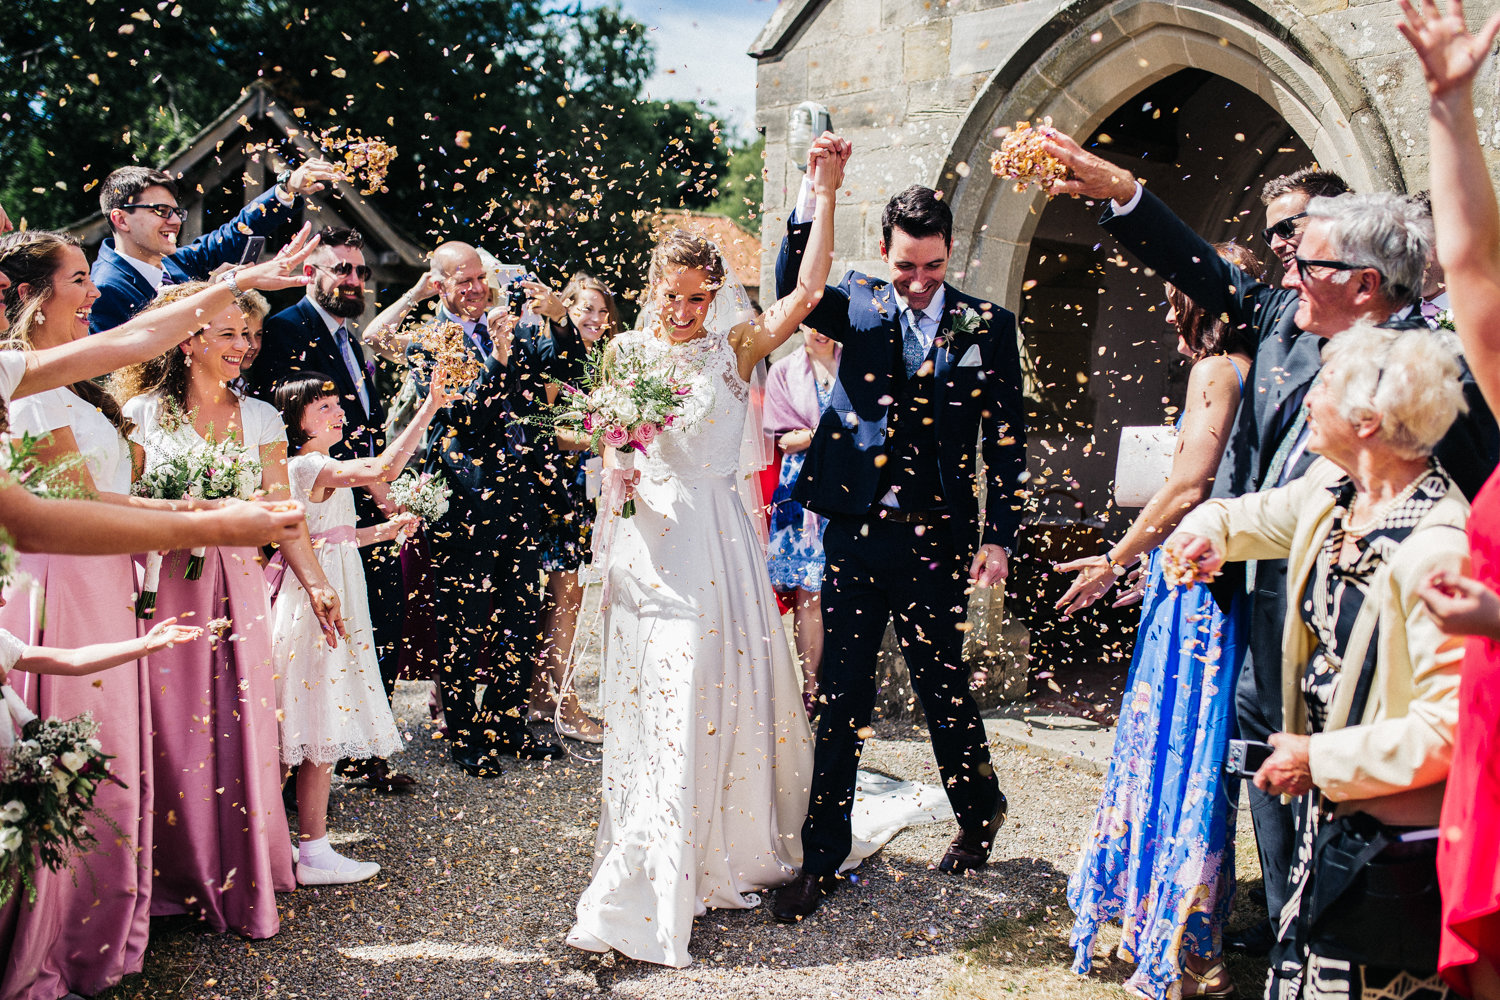 a bride and groom cheer walking through confetti and lines of guests. aldby park marquee wedding york. stop motion wedding films videos uk